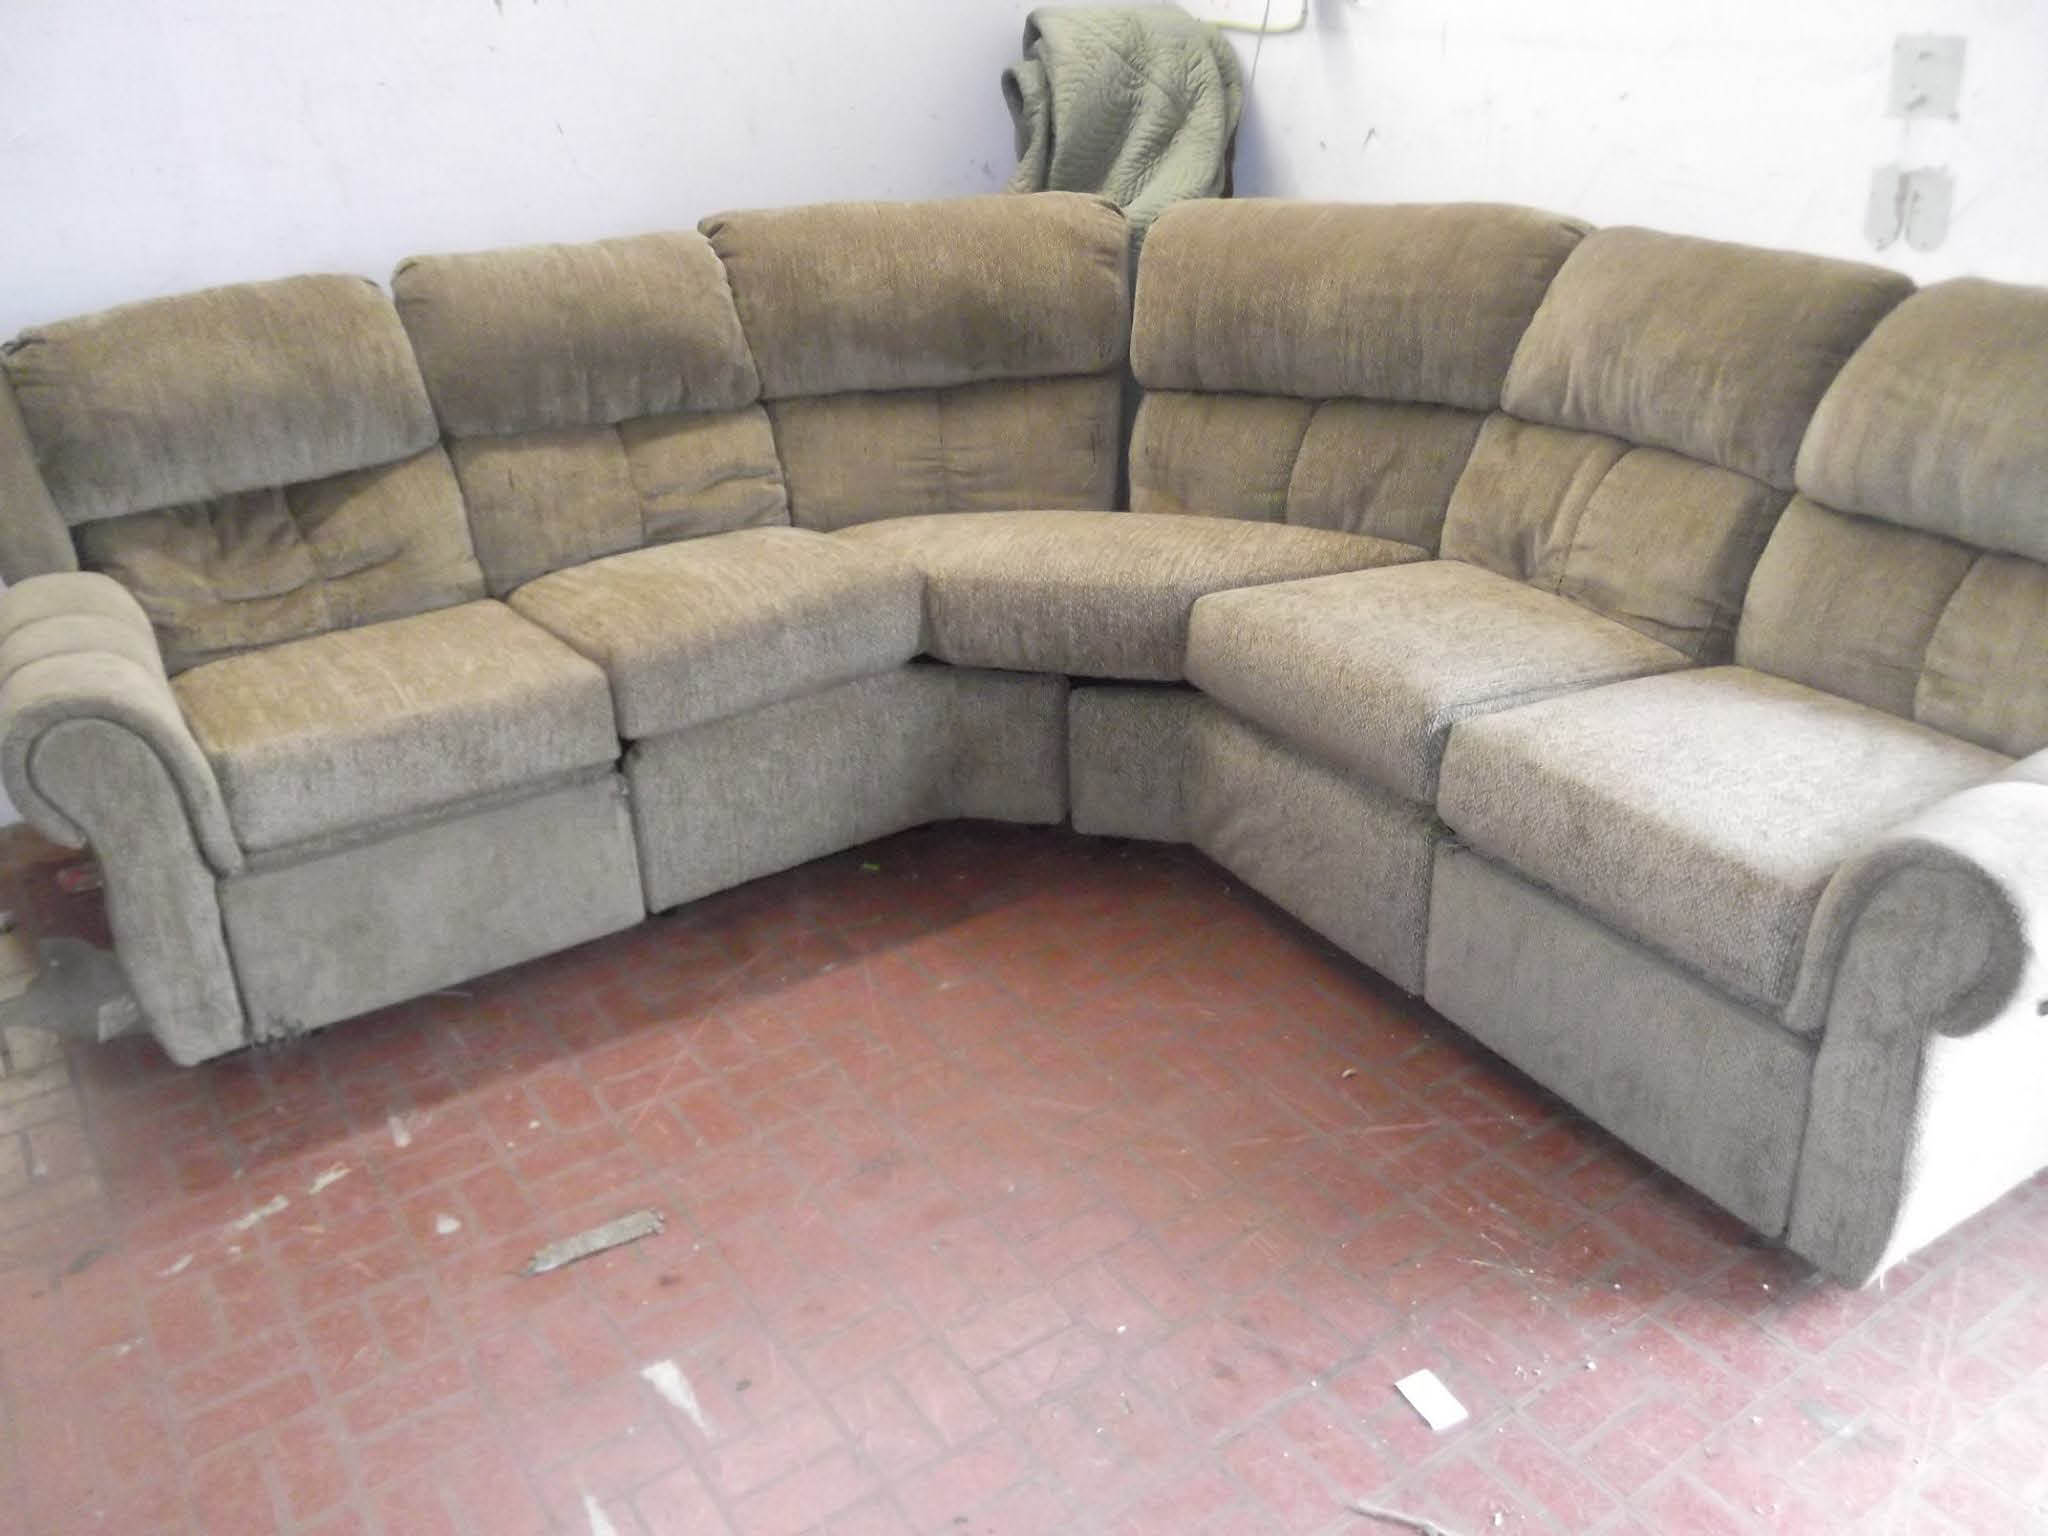 Discount Living Room Wrap Couch Near Ashville